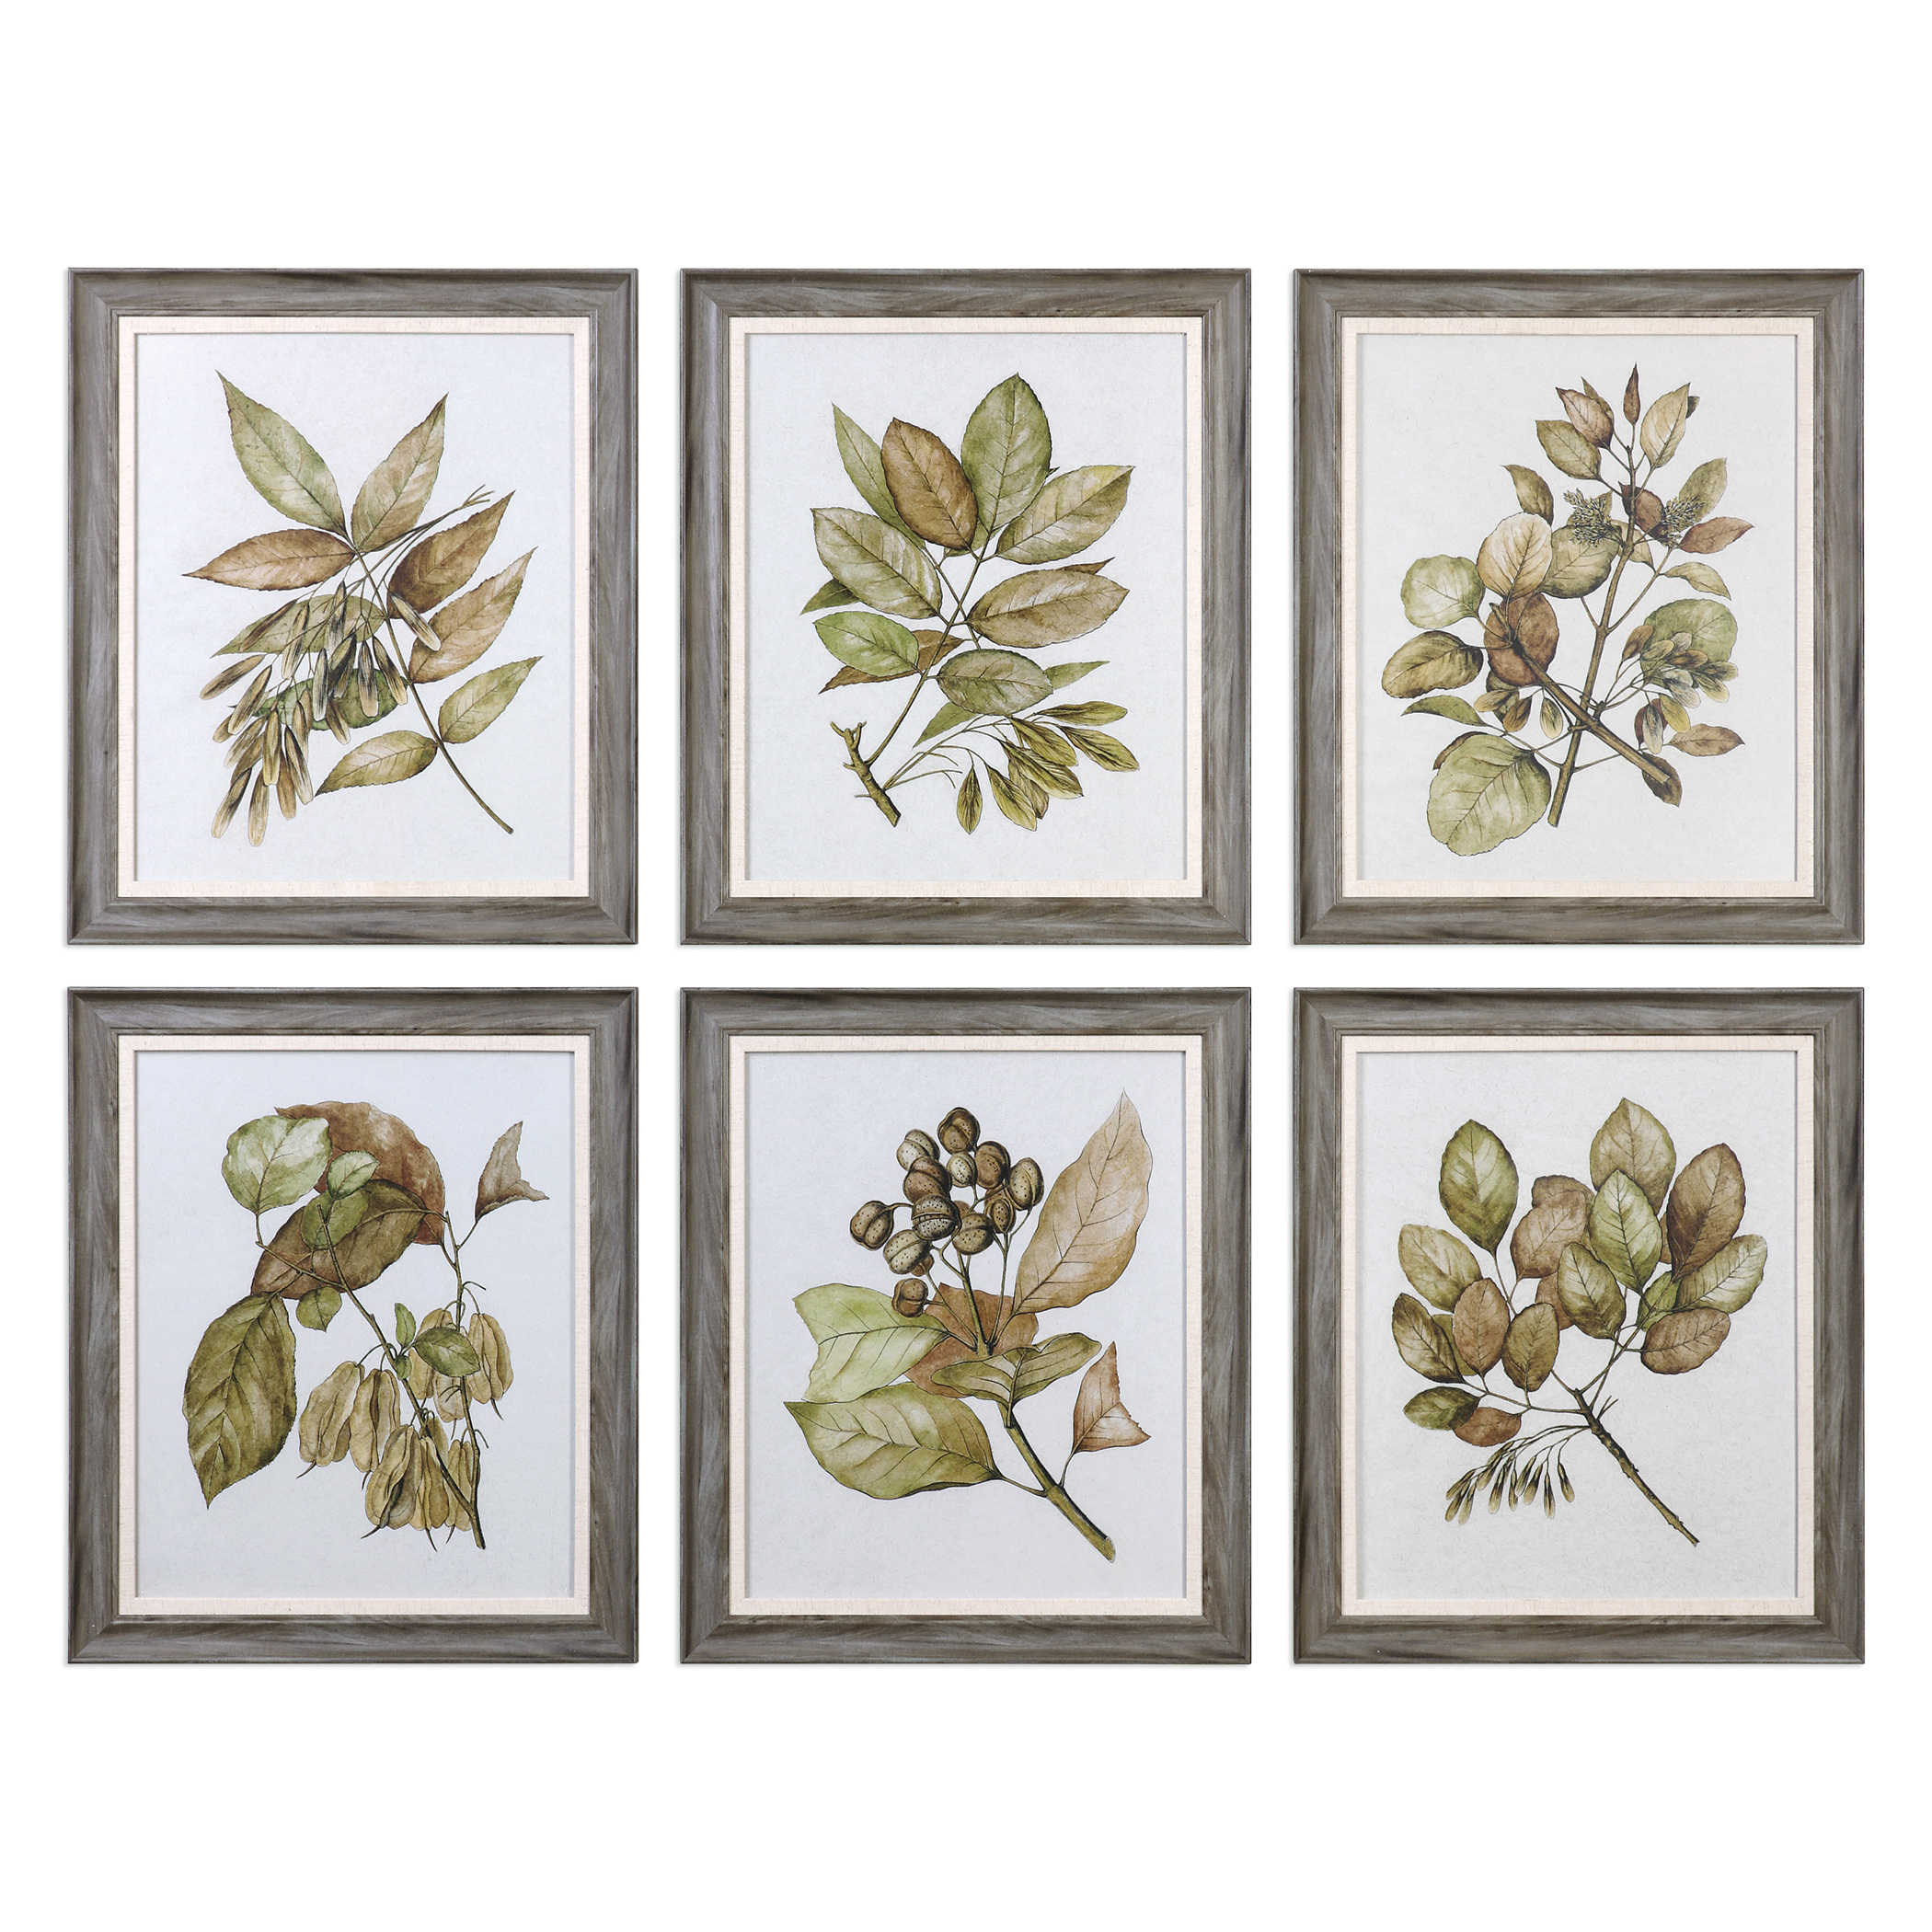 Art Glass Frame Plants Flowers Contemporary Vintage Pretty Chic Classy Uttermost Seedlings Framed Prints Set of 6